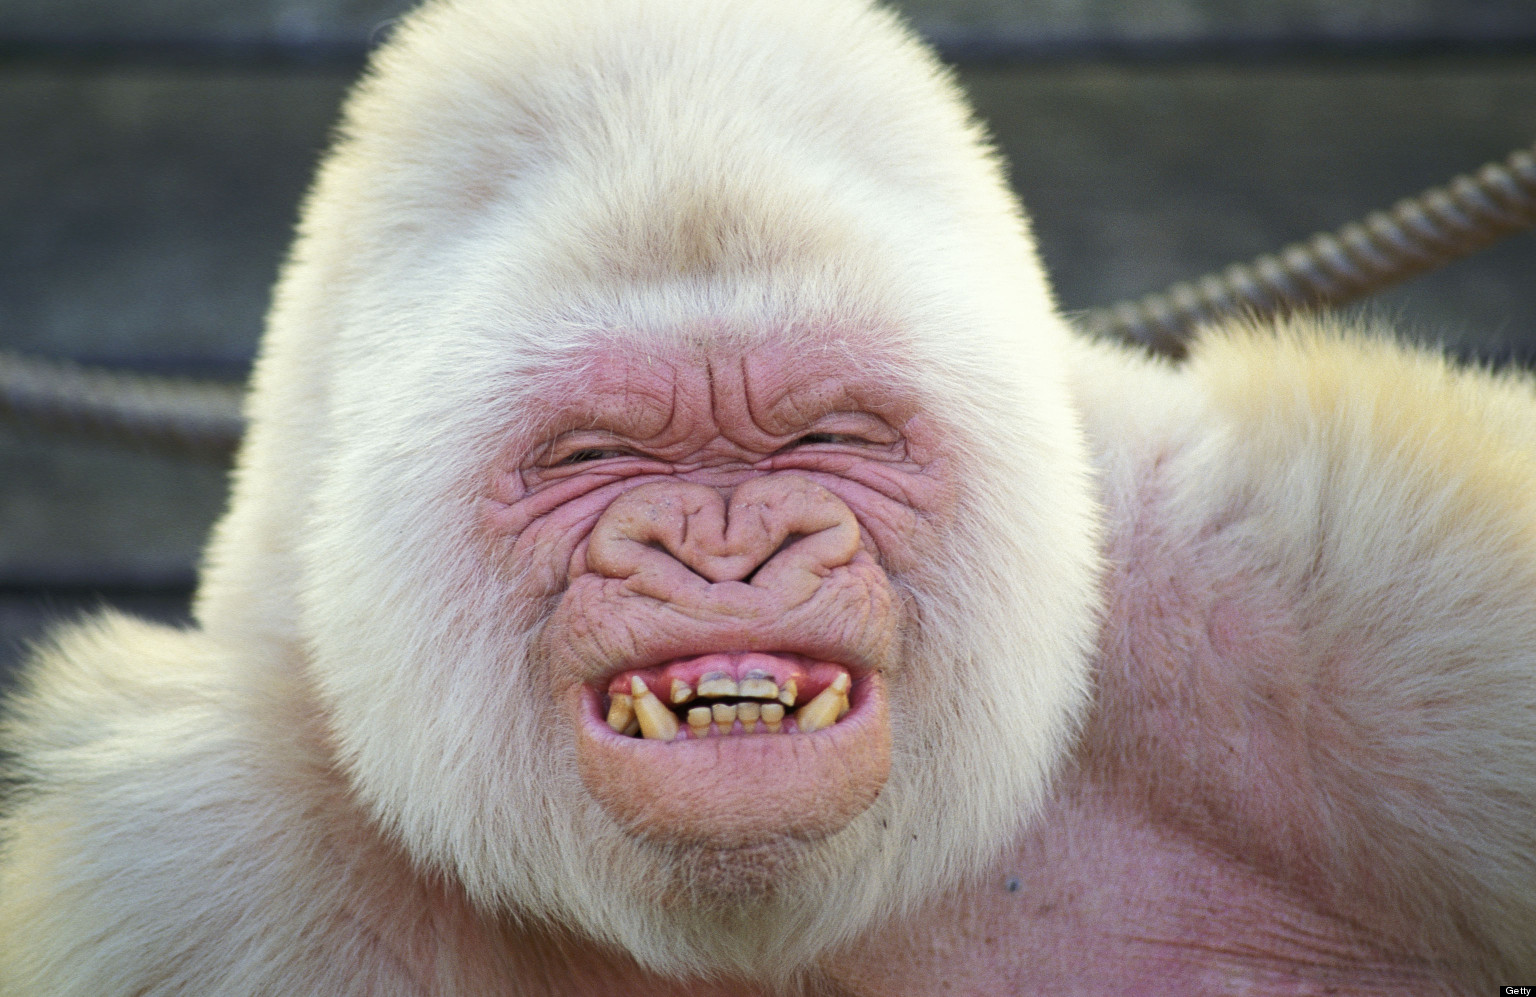 Image result for snowflake the white gorilla (http://1.bp.blogspot.com/-IWTKZlfUS9M/UcBfP0i2wKI/AAAAAAAAXsk/2buMs-u5y0g/s1600/snowflake-gorilla-barcellona-zoo.jpg)